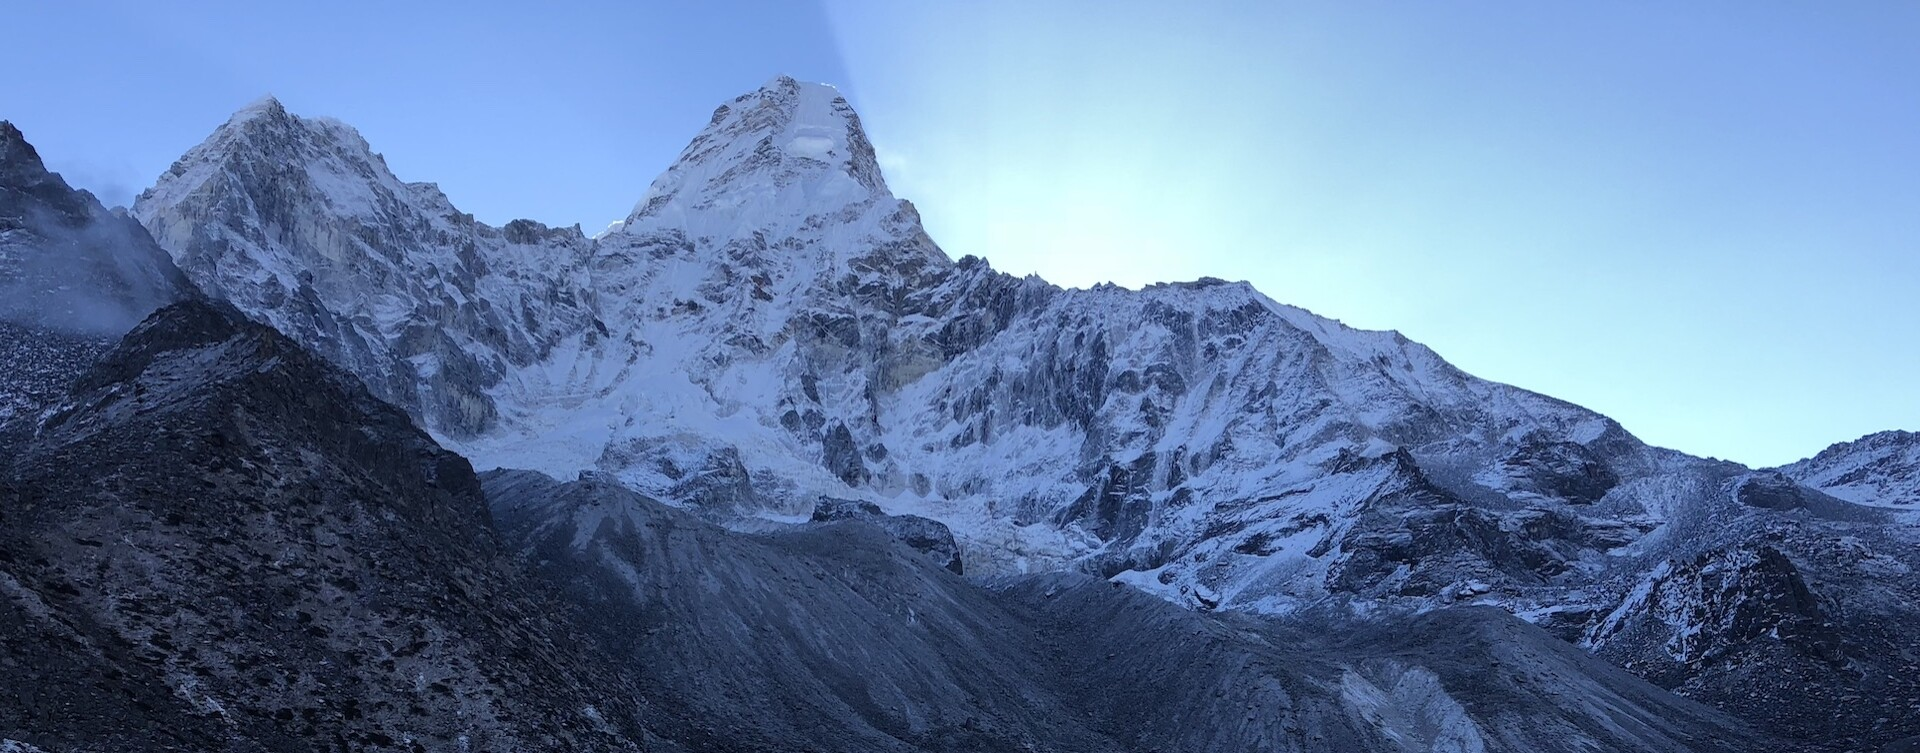 Ascension de l'Ama Dablam